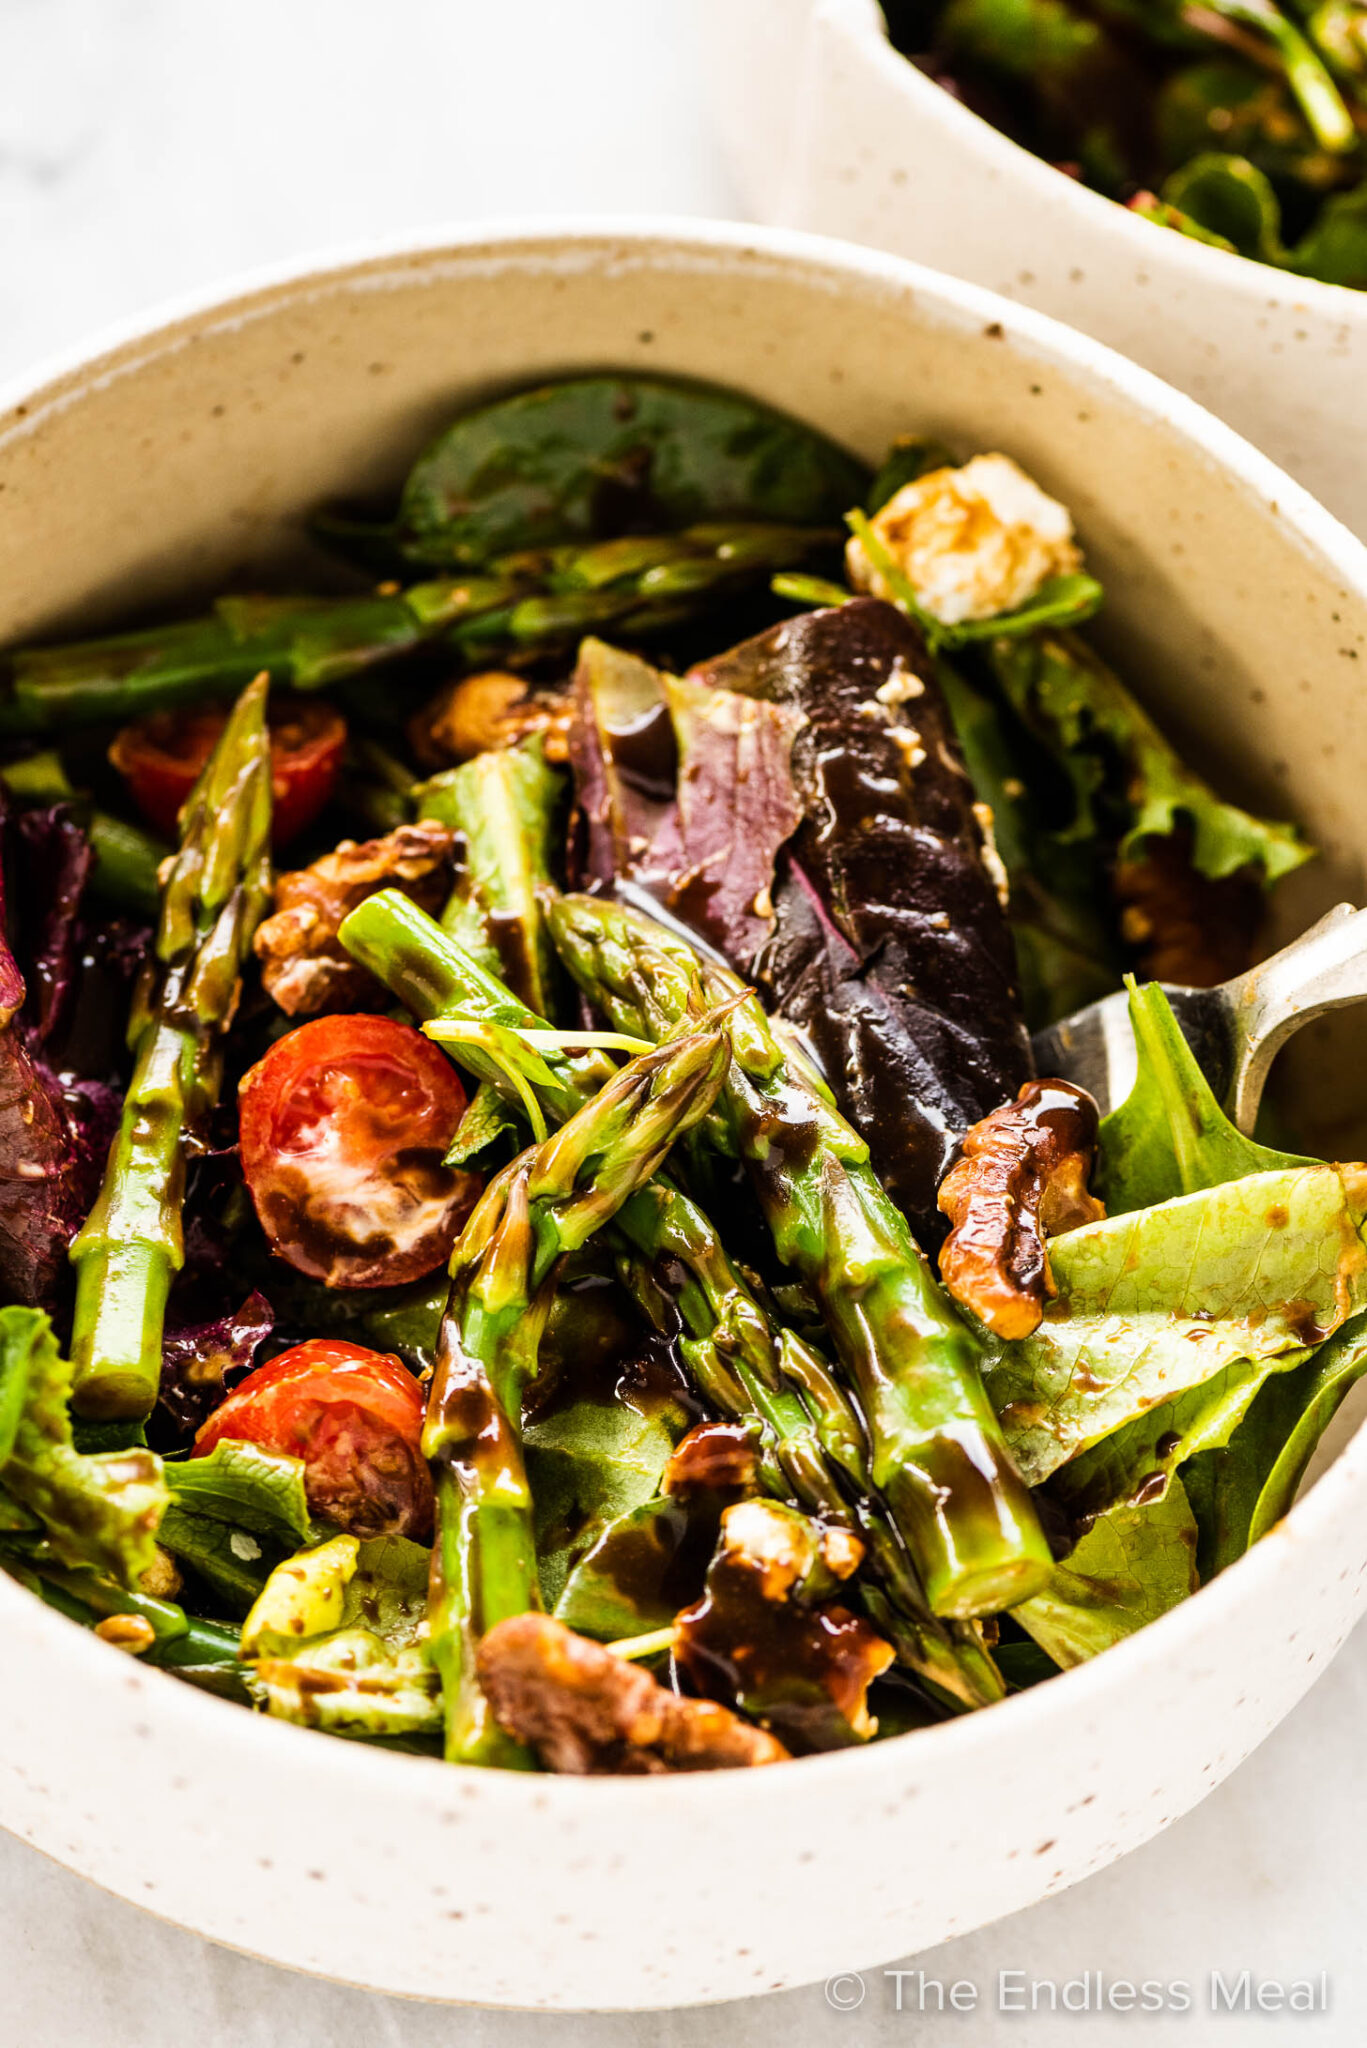 Asparagus salad in a bowl with a fork.